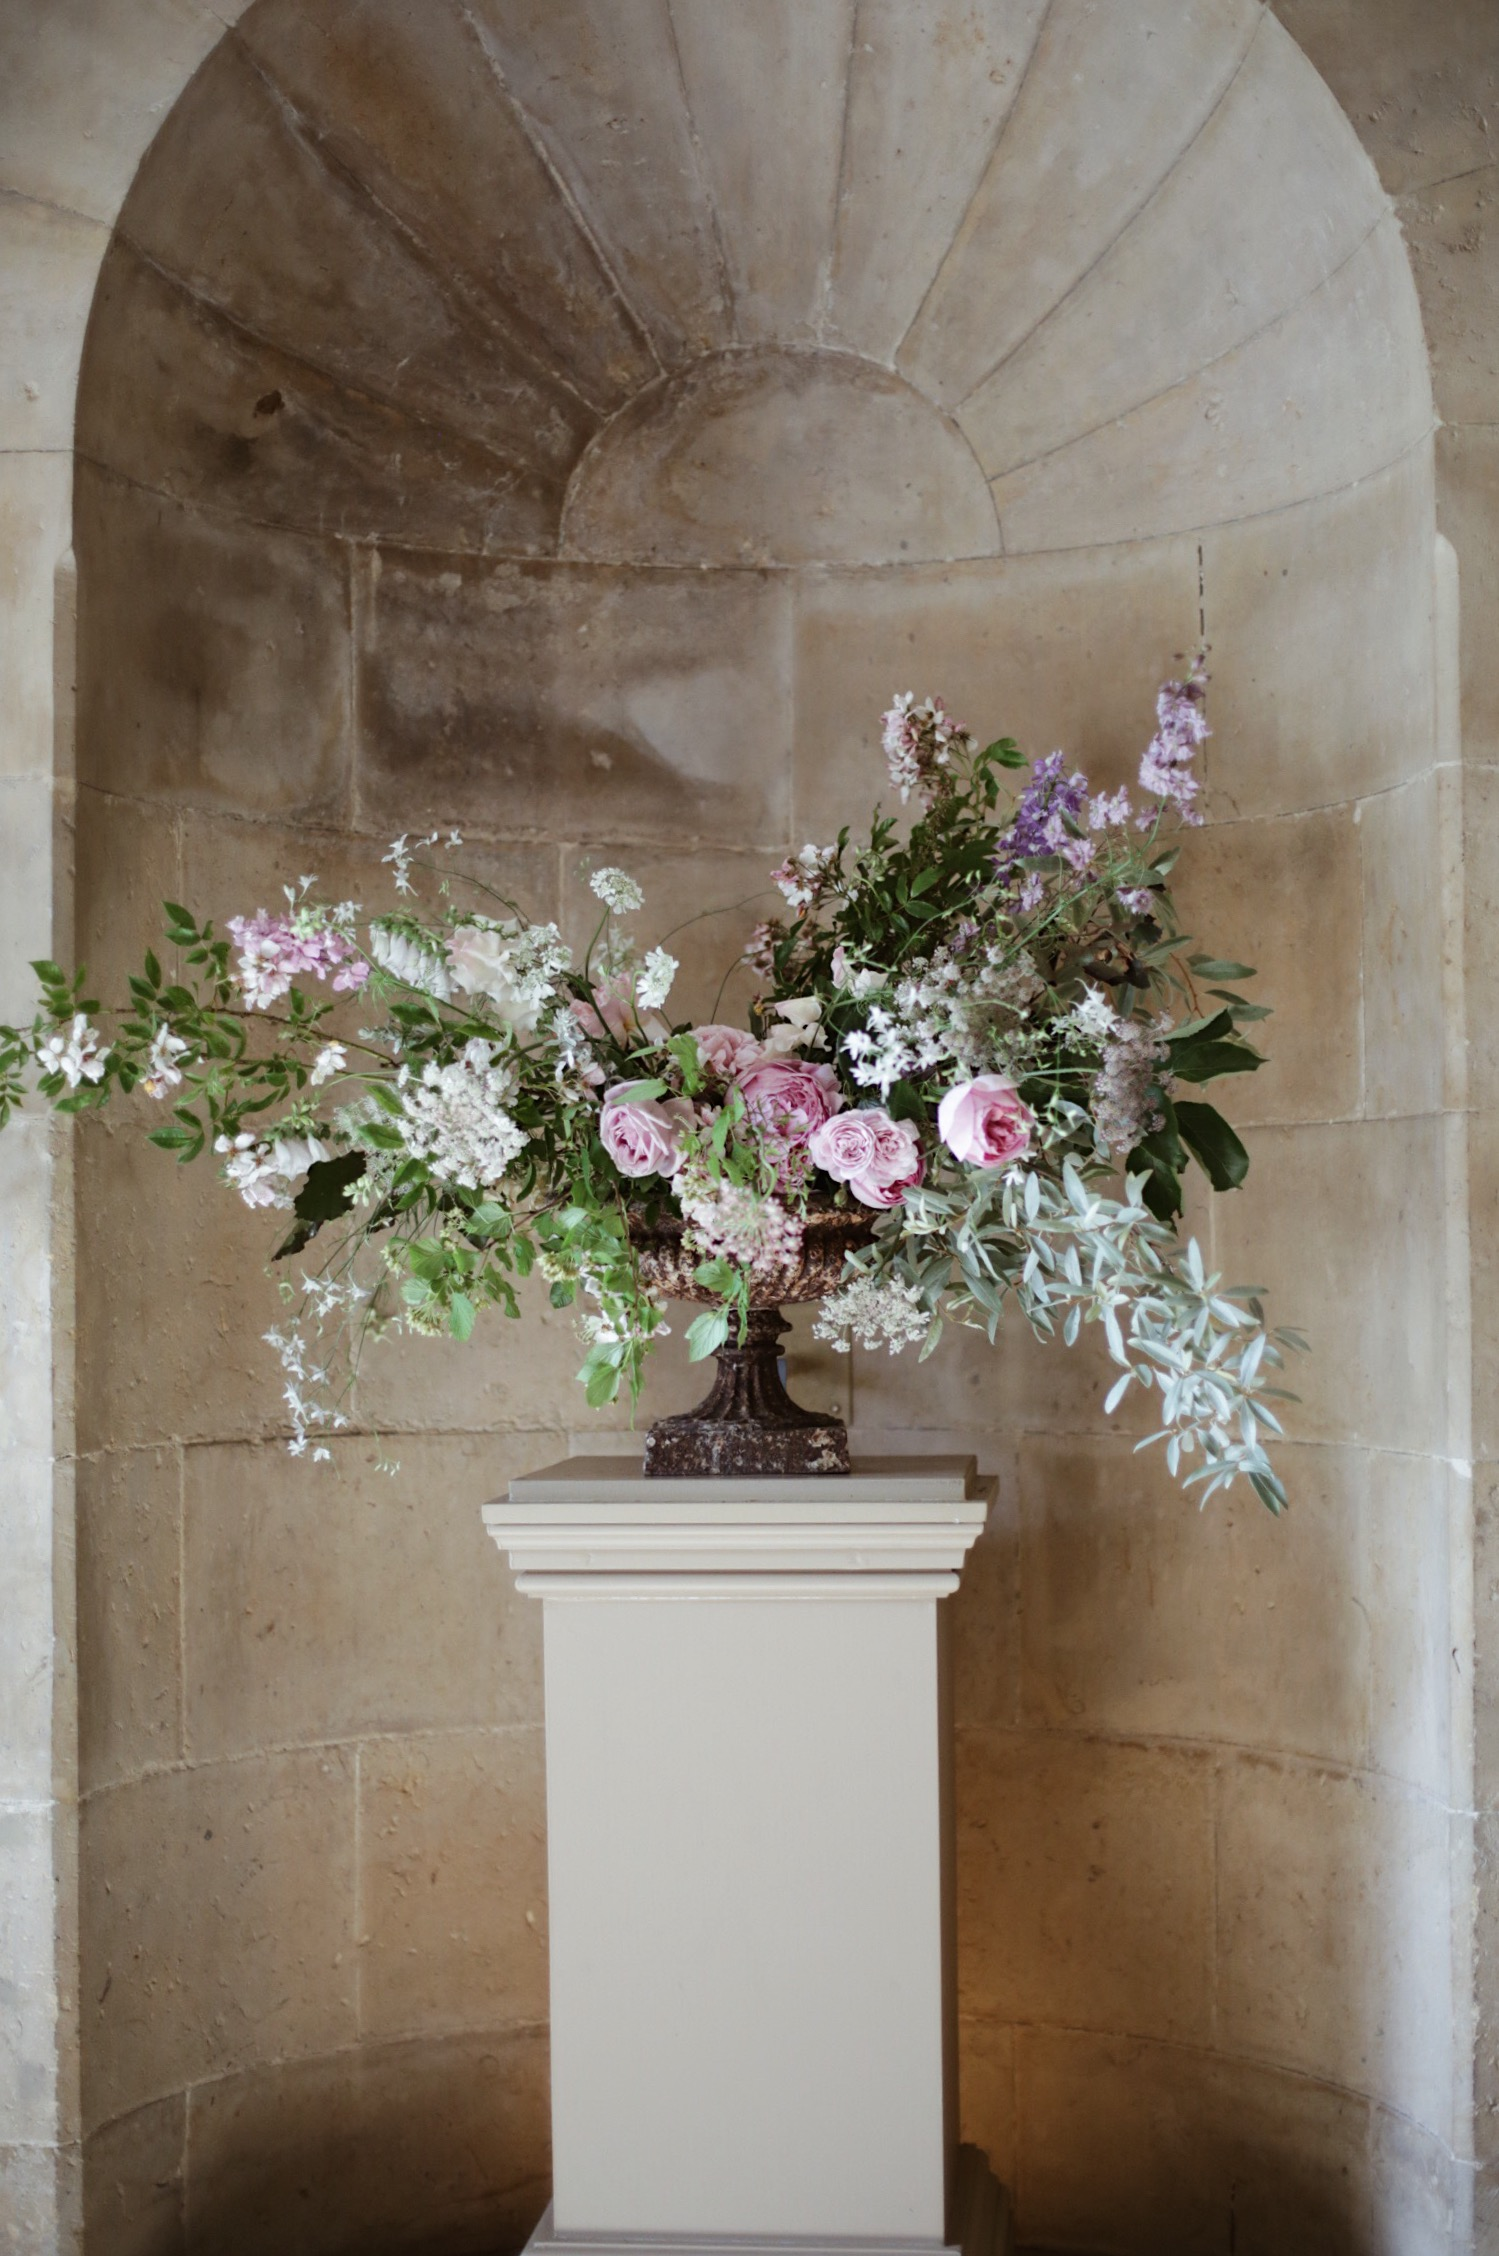 Urn of Summer flowers by Fiona Pickles - Image Hannah Straughan